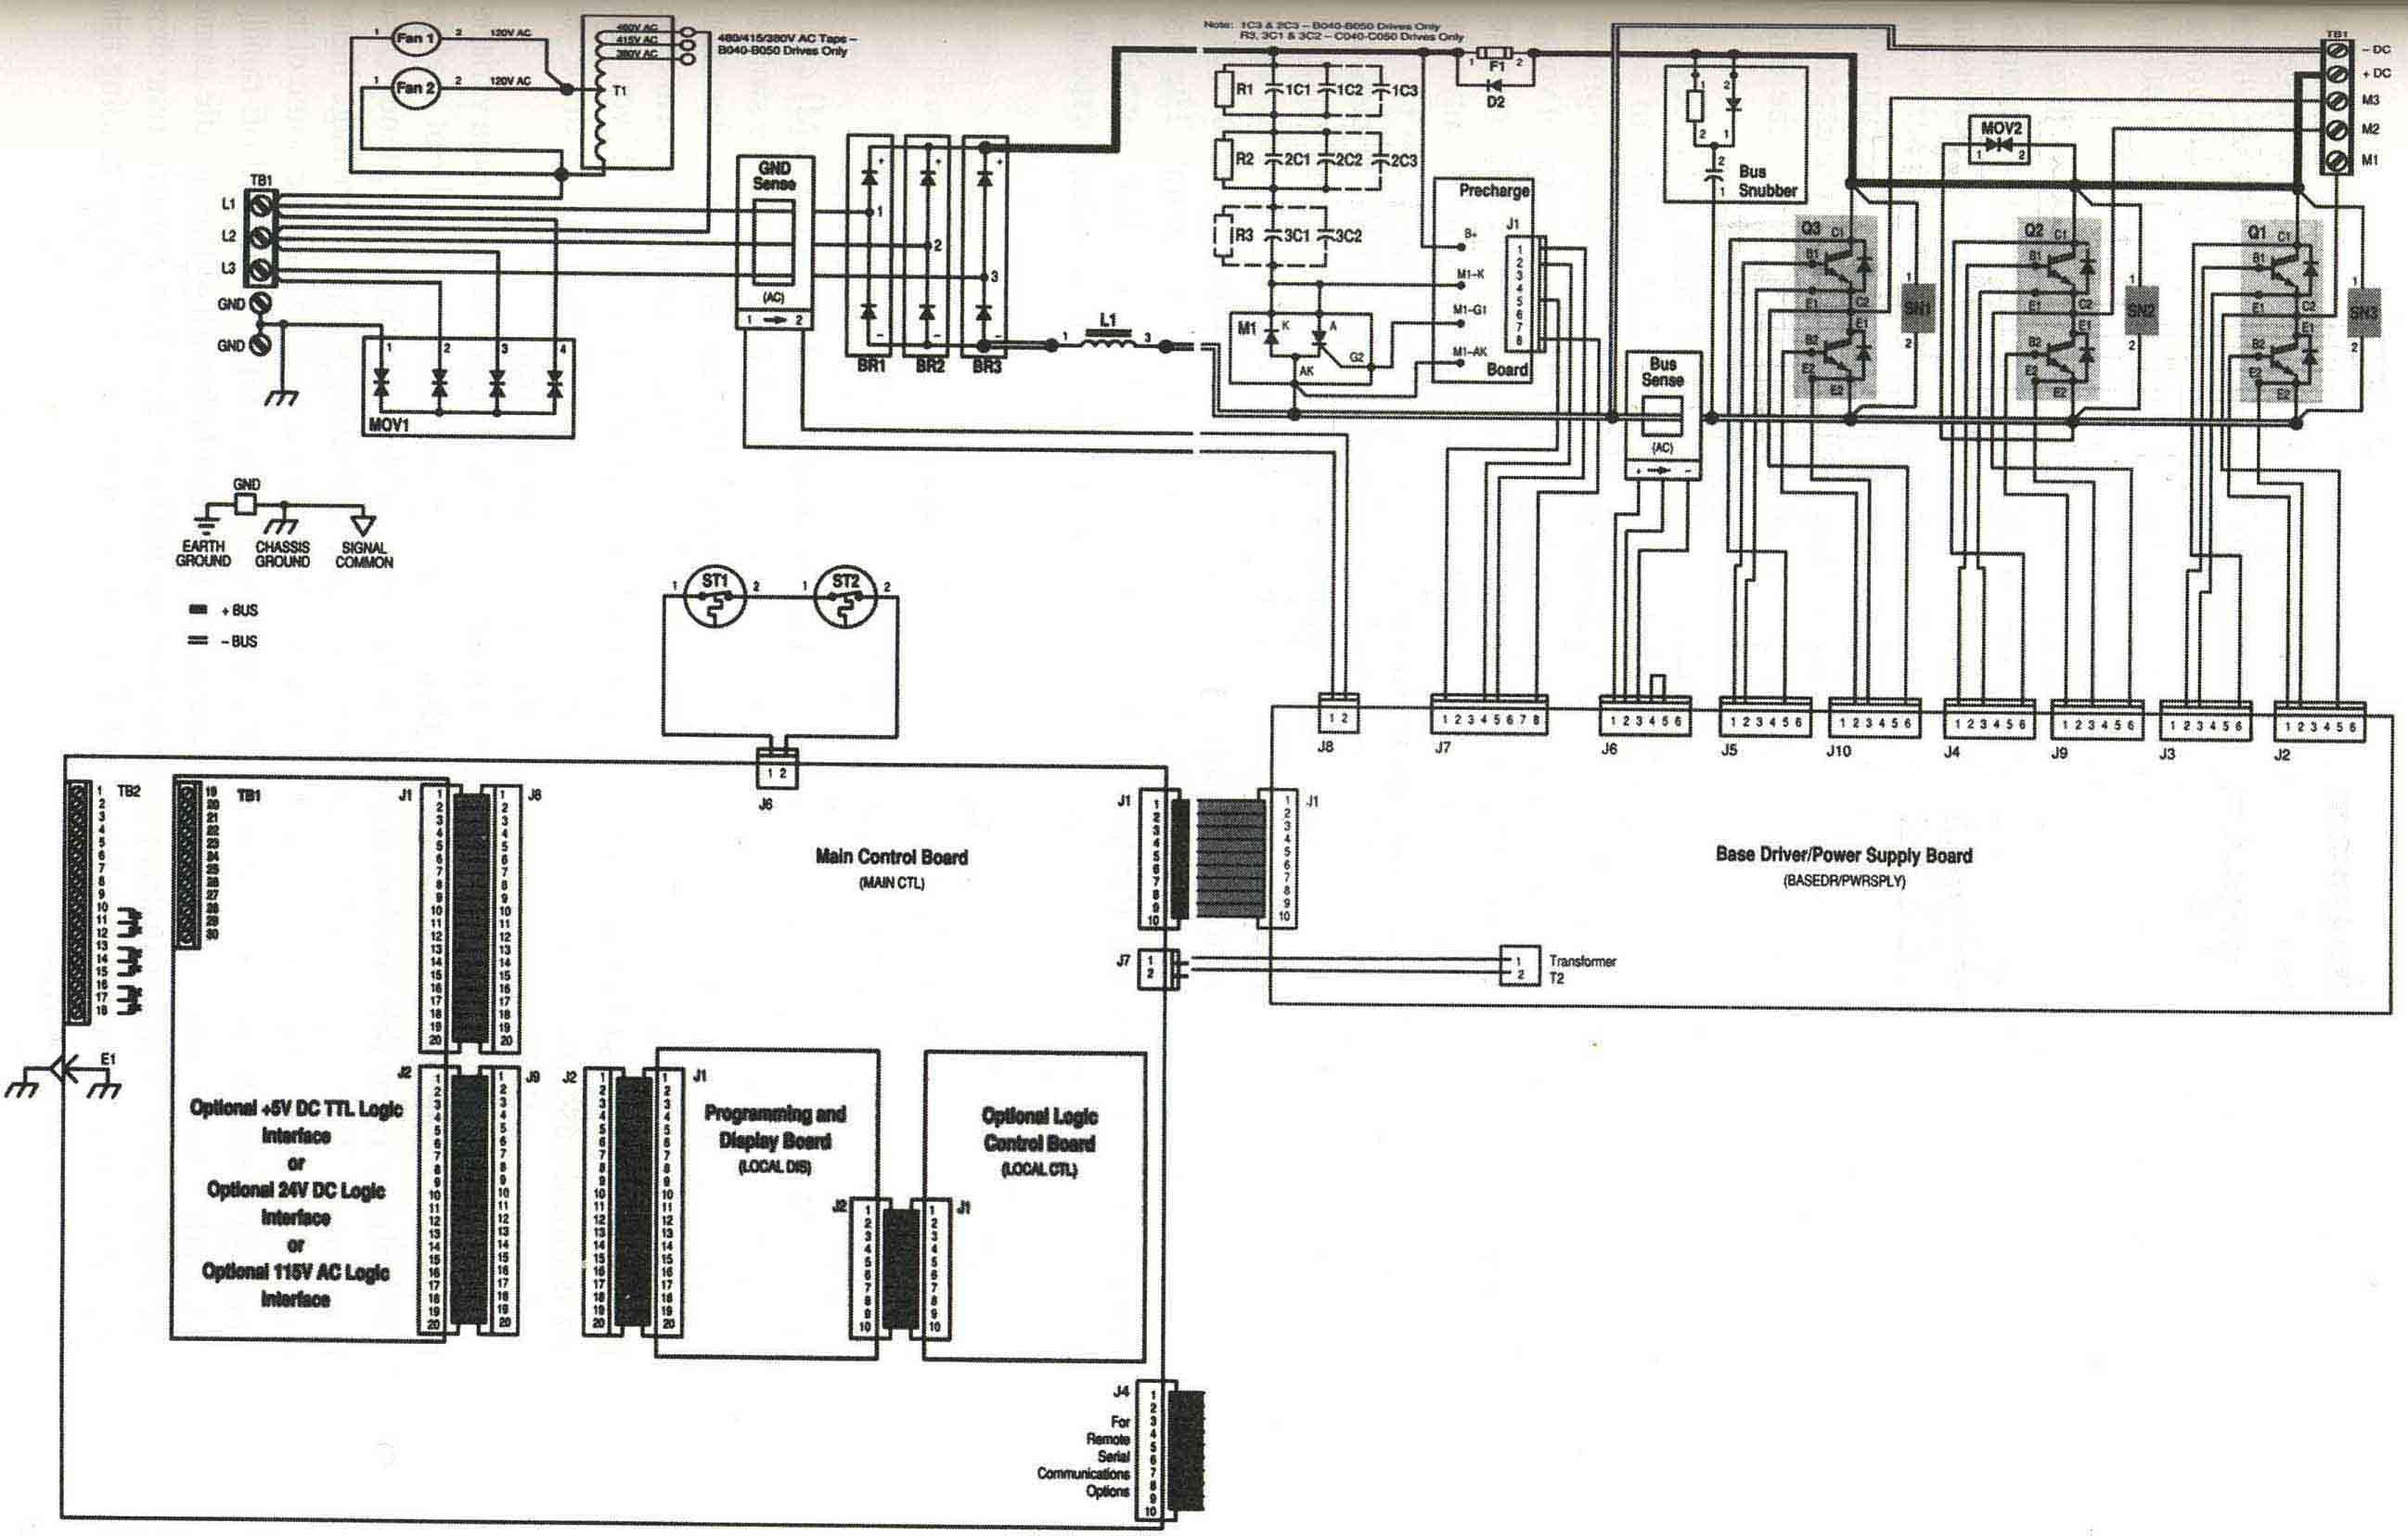 Strange Whole House Internet Wiring Diagram Wiring A House For Internet Tv Wiring 101 Akebretraxxcnl